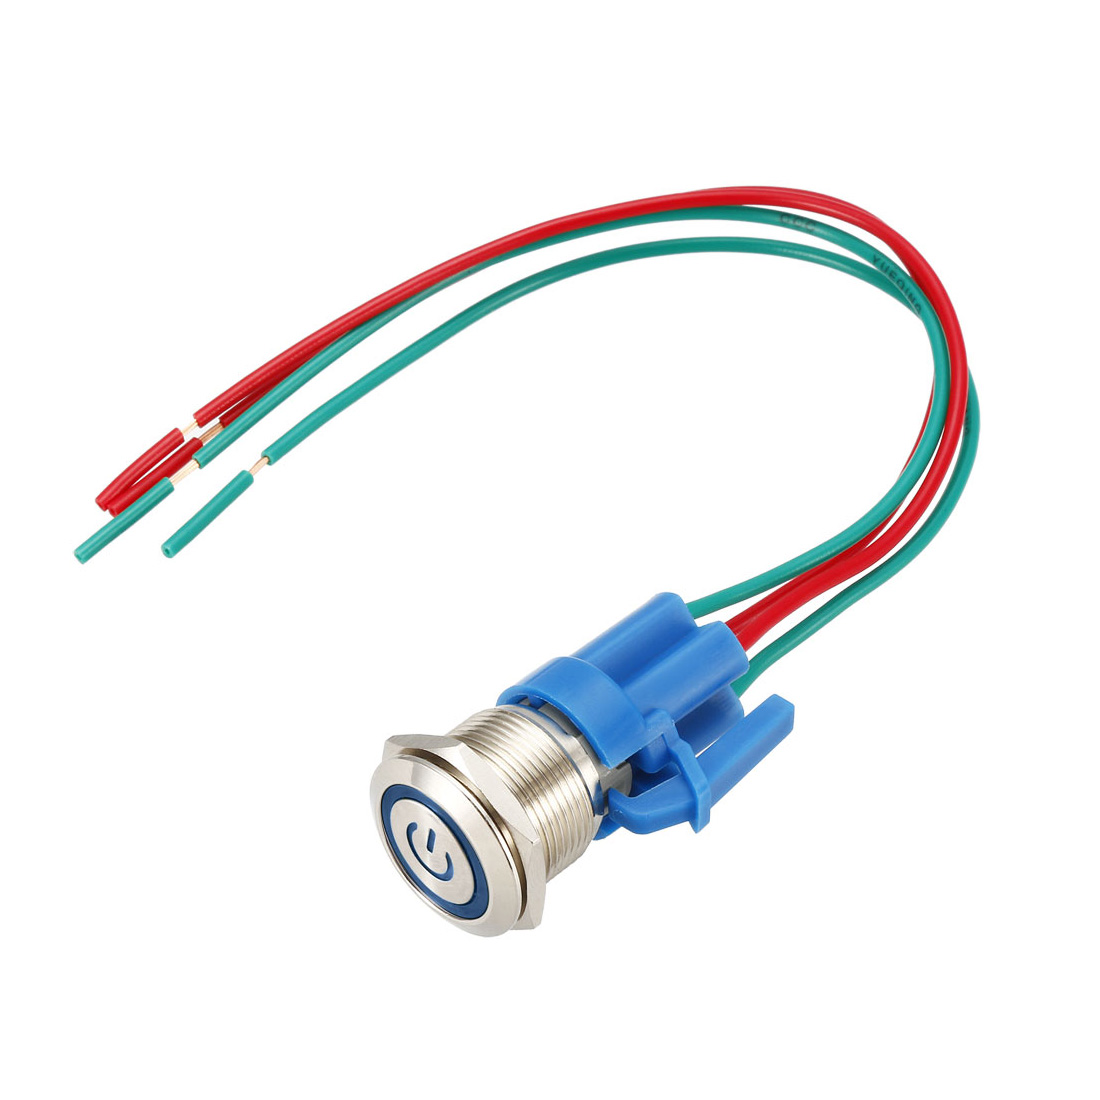 Latching Push Button Switch 19mm Mounting 1NO 24V Blue LED with Socket Plug